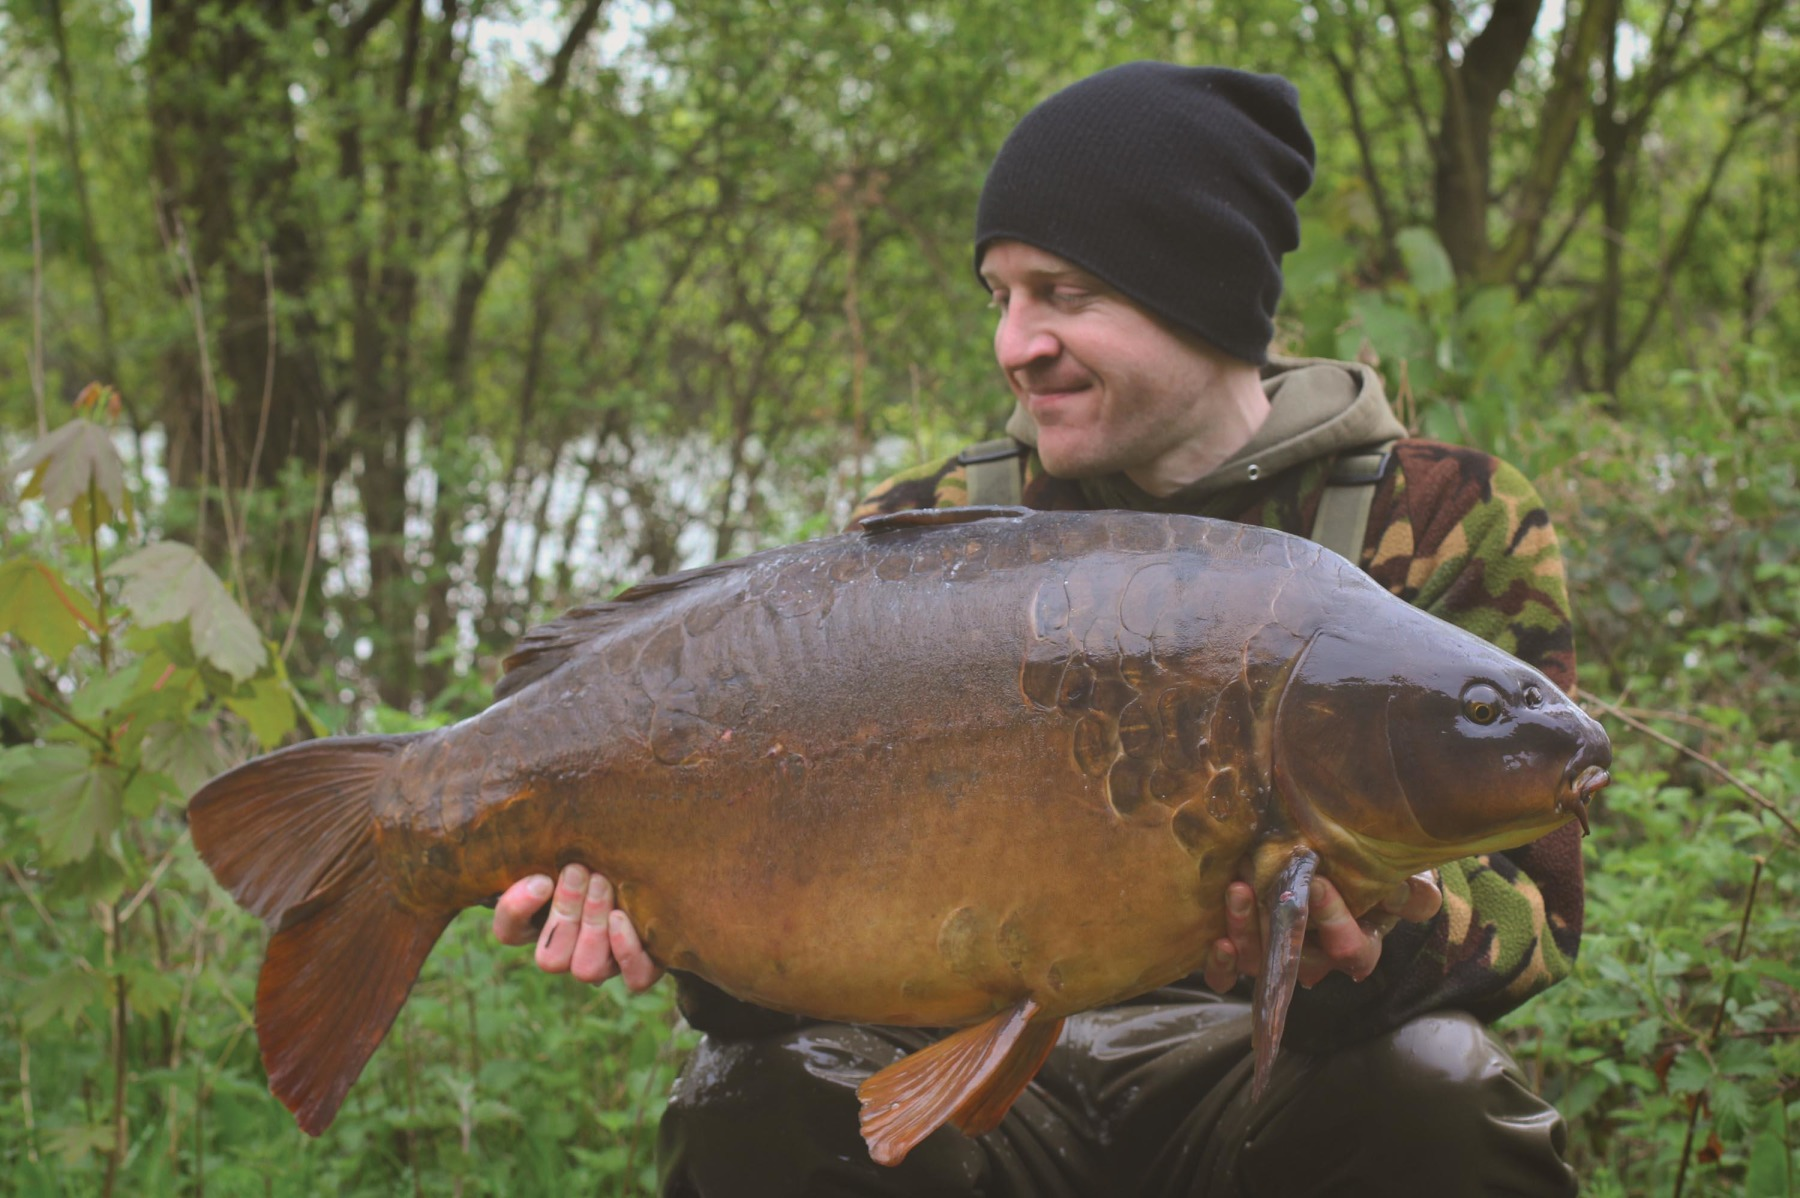 The Soft Hinge, much like the original Hinged Stiff Rig, proved successful in singling out the better fish but I still felt it lacked the overall effectiveness of the 360º. A stunning carp called Cluster from Pingewood